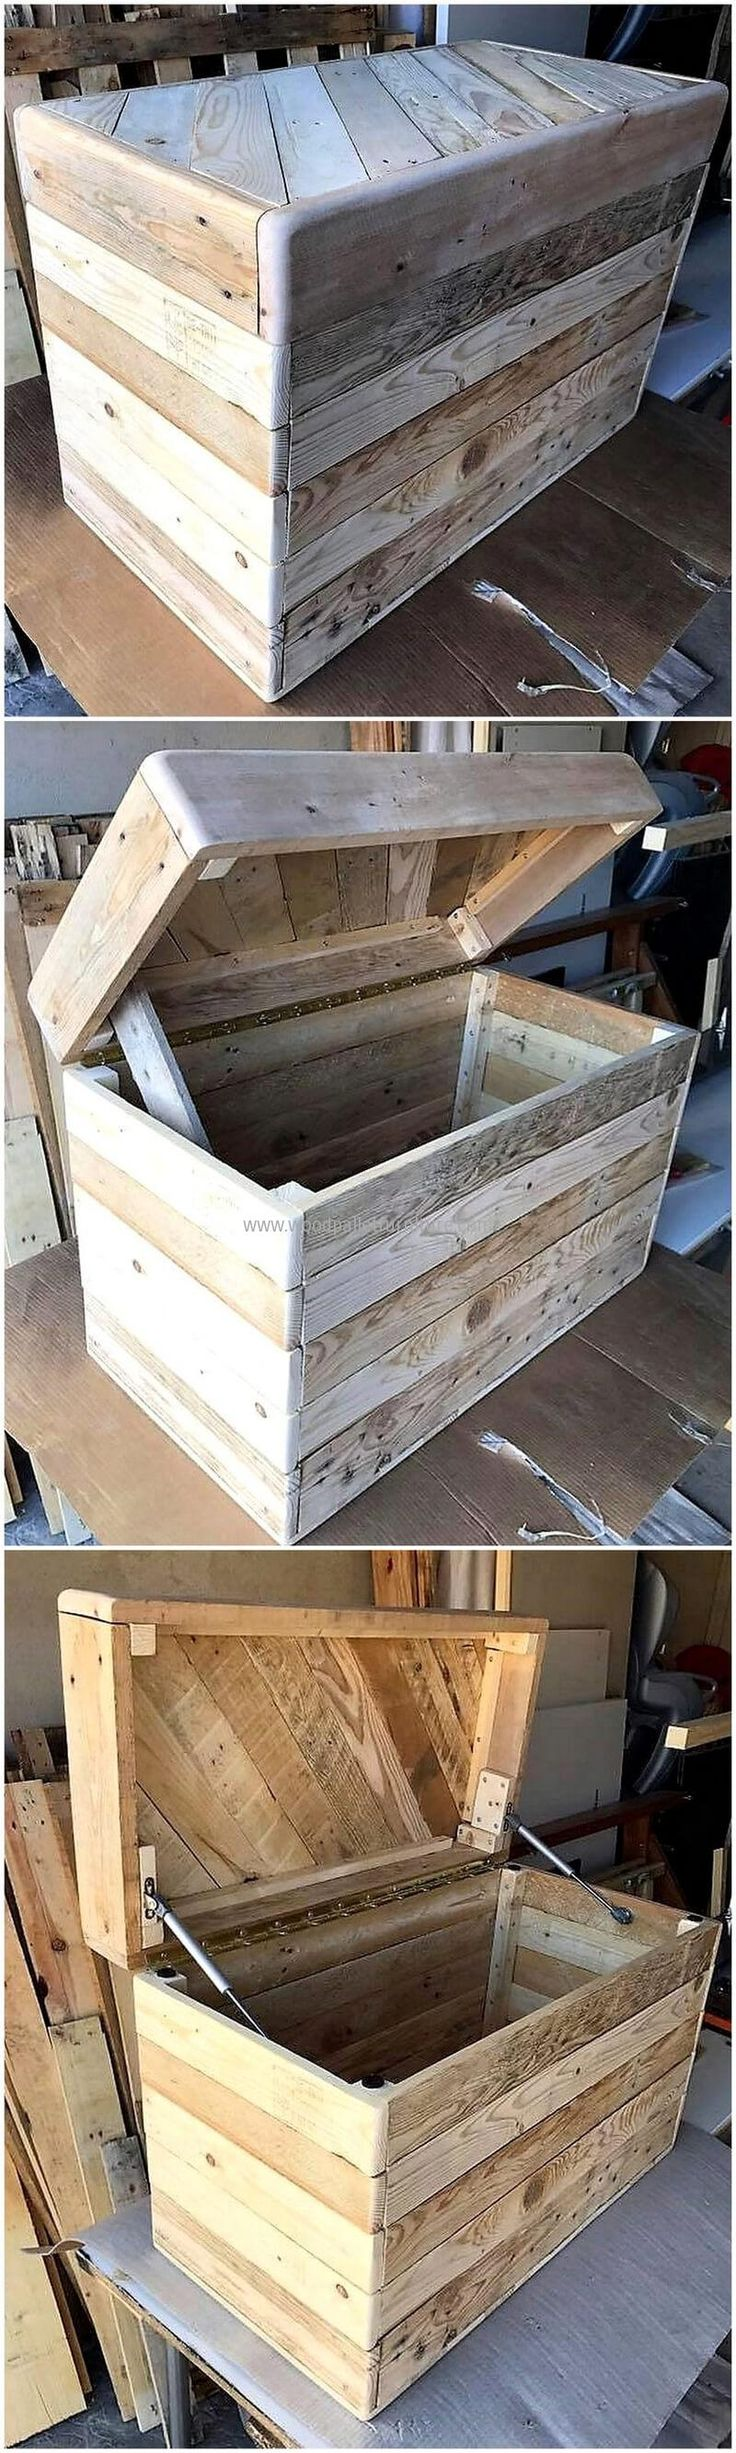 pallets made chest idea